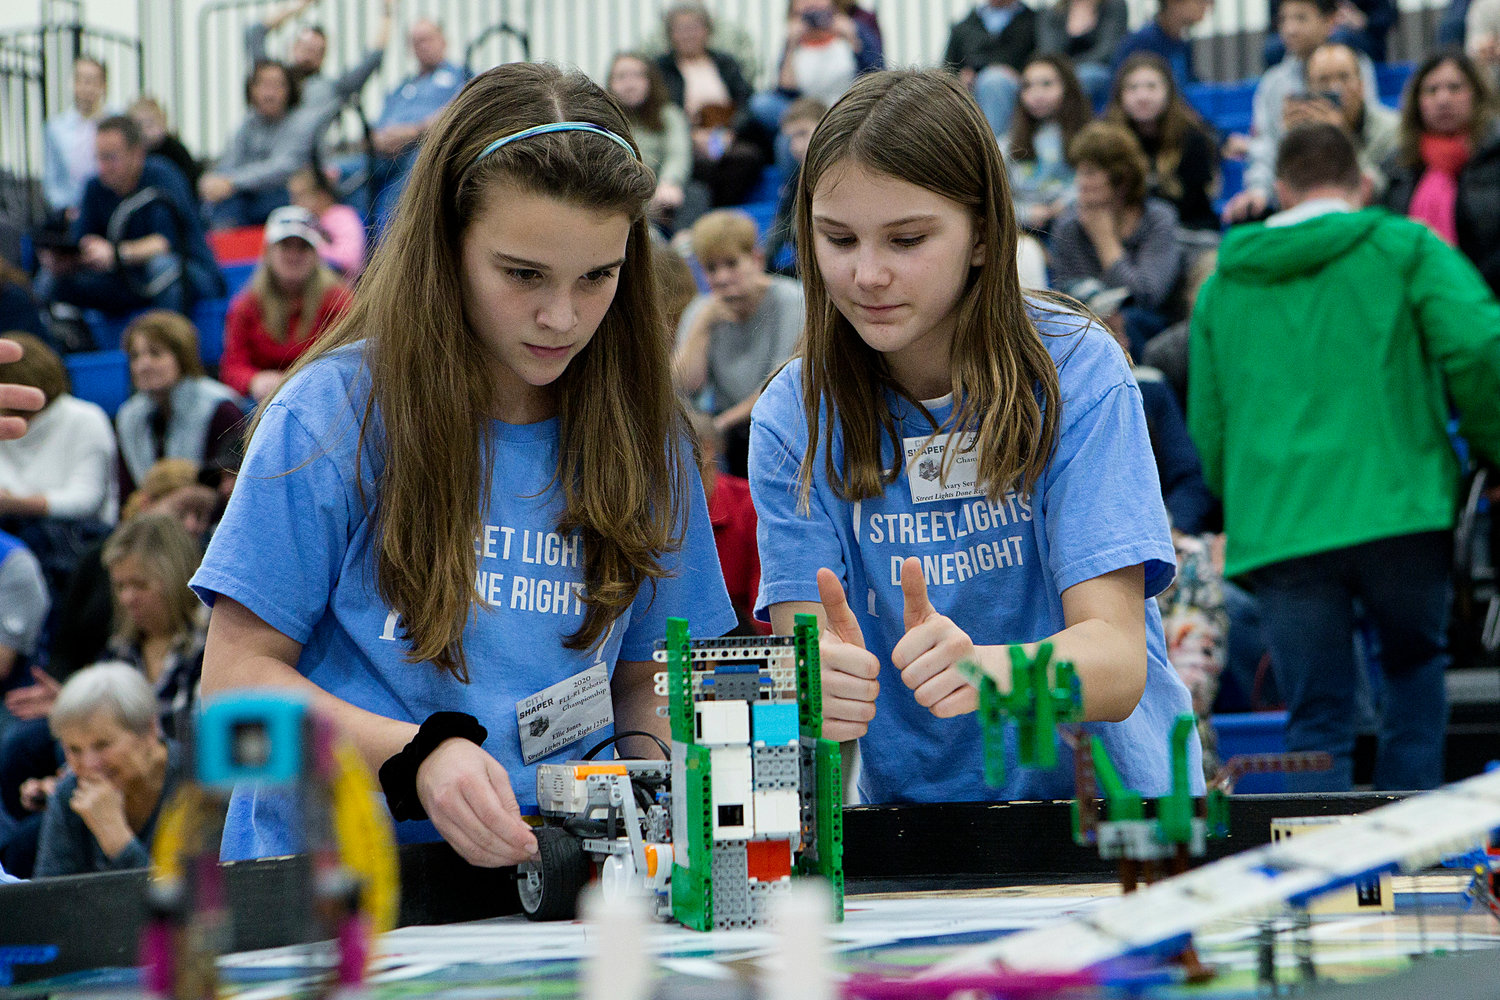 Avary Serpa (right) offers two thumbs up after she and Ellie Jones (left) make adjustments to their robot during round two.